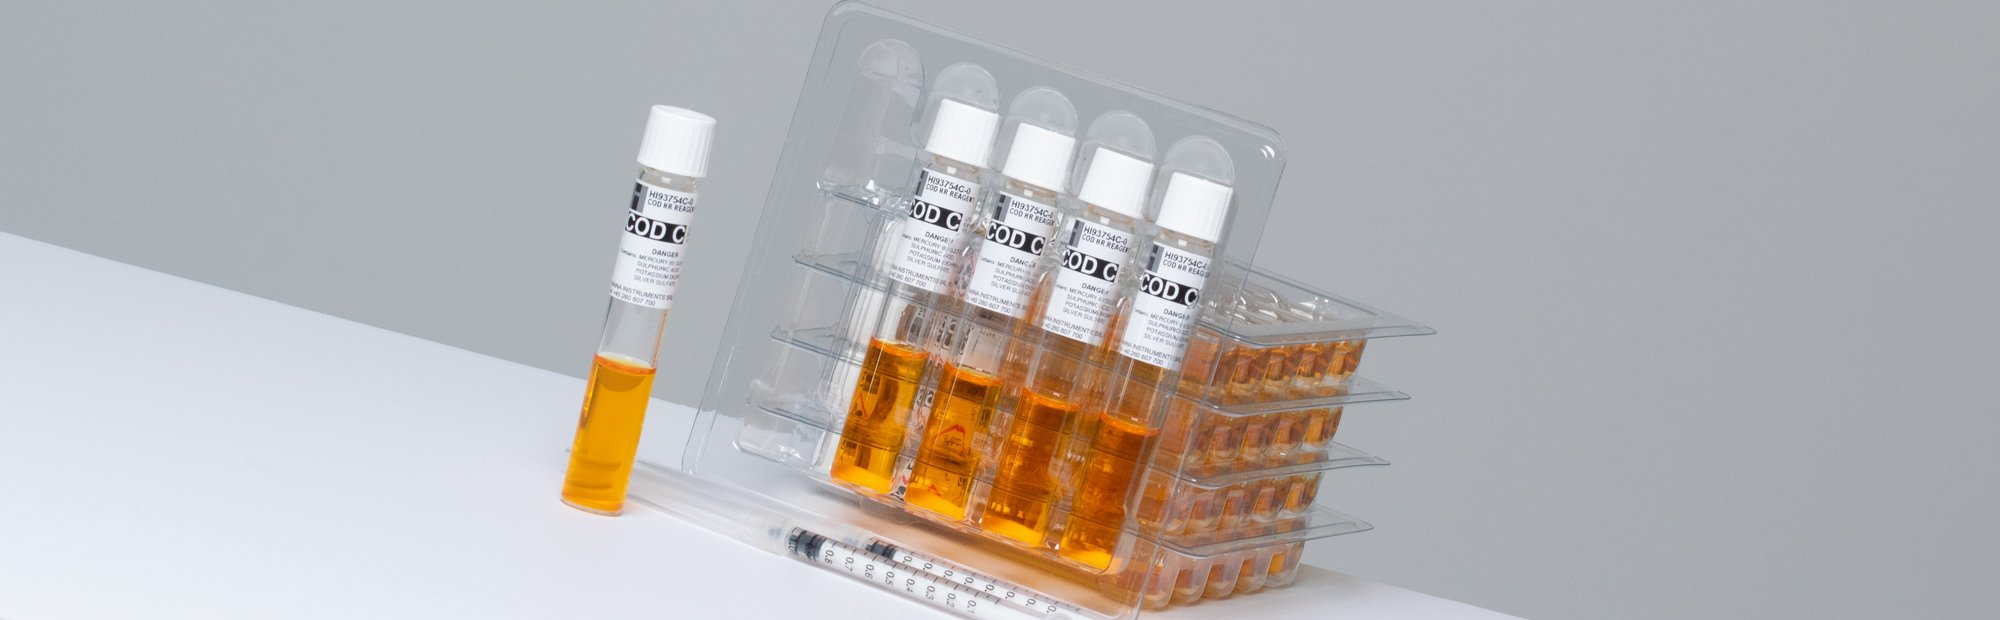 COD Reagents Packing